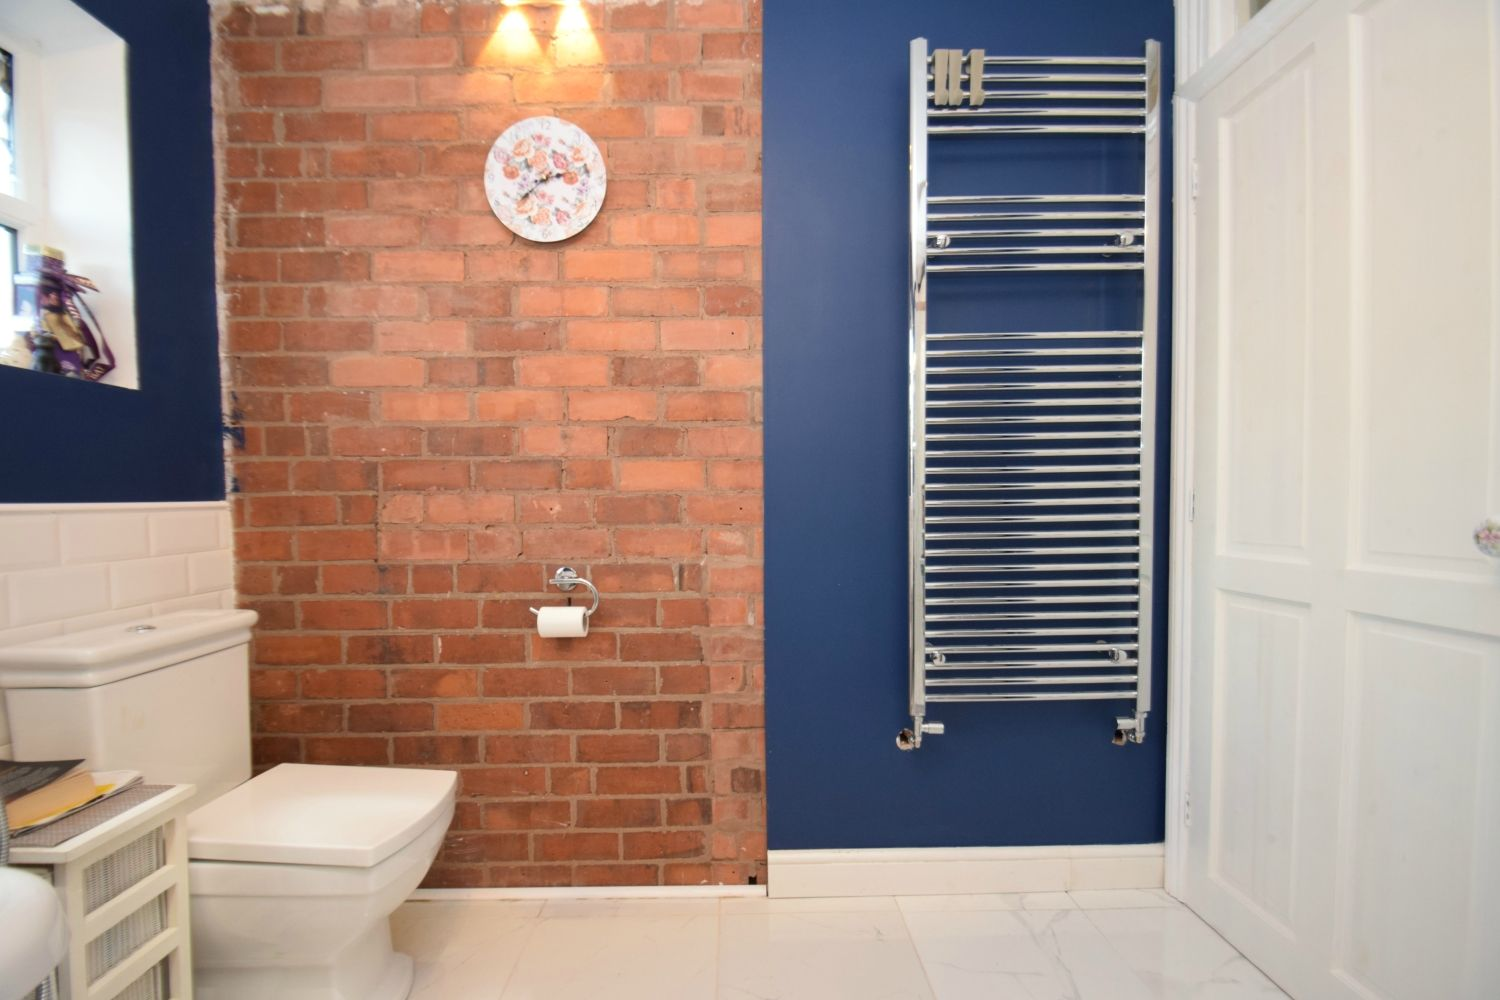 4 bed semi-detached for sale in Upland Grove, Bromsgrove, B61 21